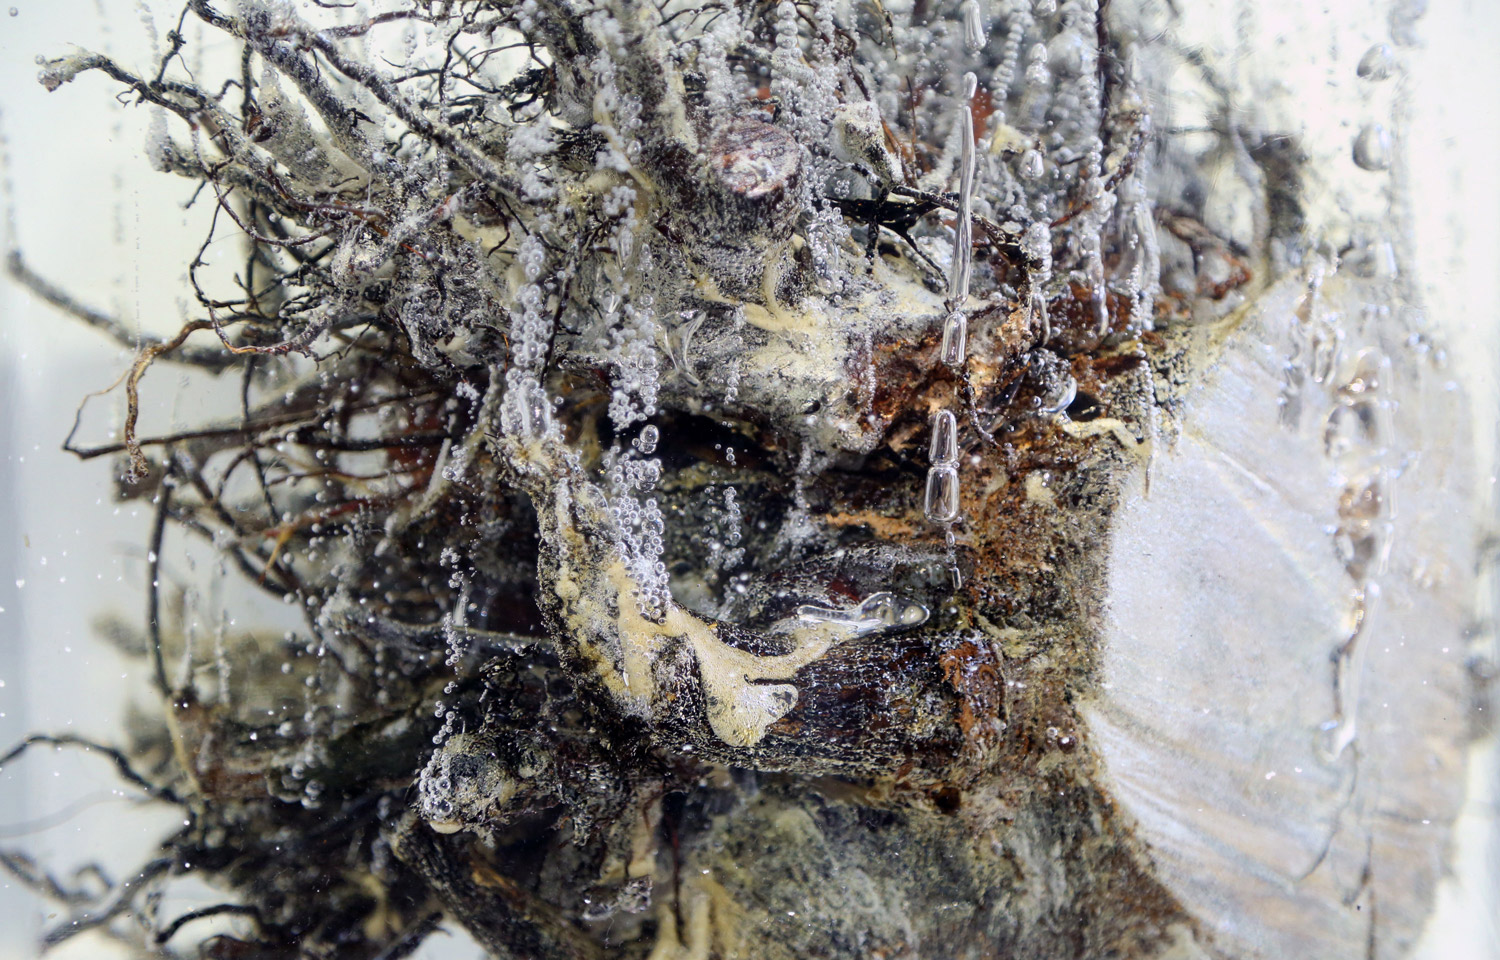 Tree Root in Solid:  In 2004, I was trying to create solid 7 feet resin cube, and experimented with different variables . During the process, I found many interesting chemical reactions resulting from different combinations between resin and organic form. Different combinations resulted in variations in air bubble and form, allowing me to explore the relationship between organic and artificial. The actual sculpture was completed in 2007.